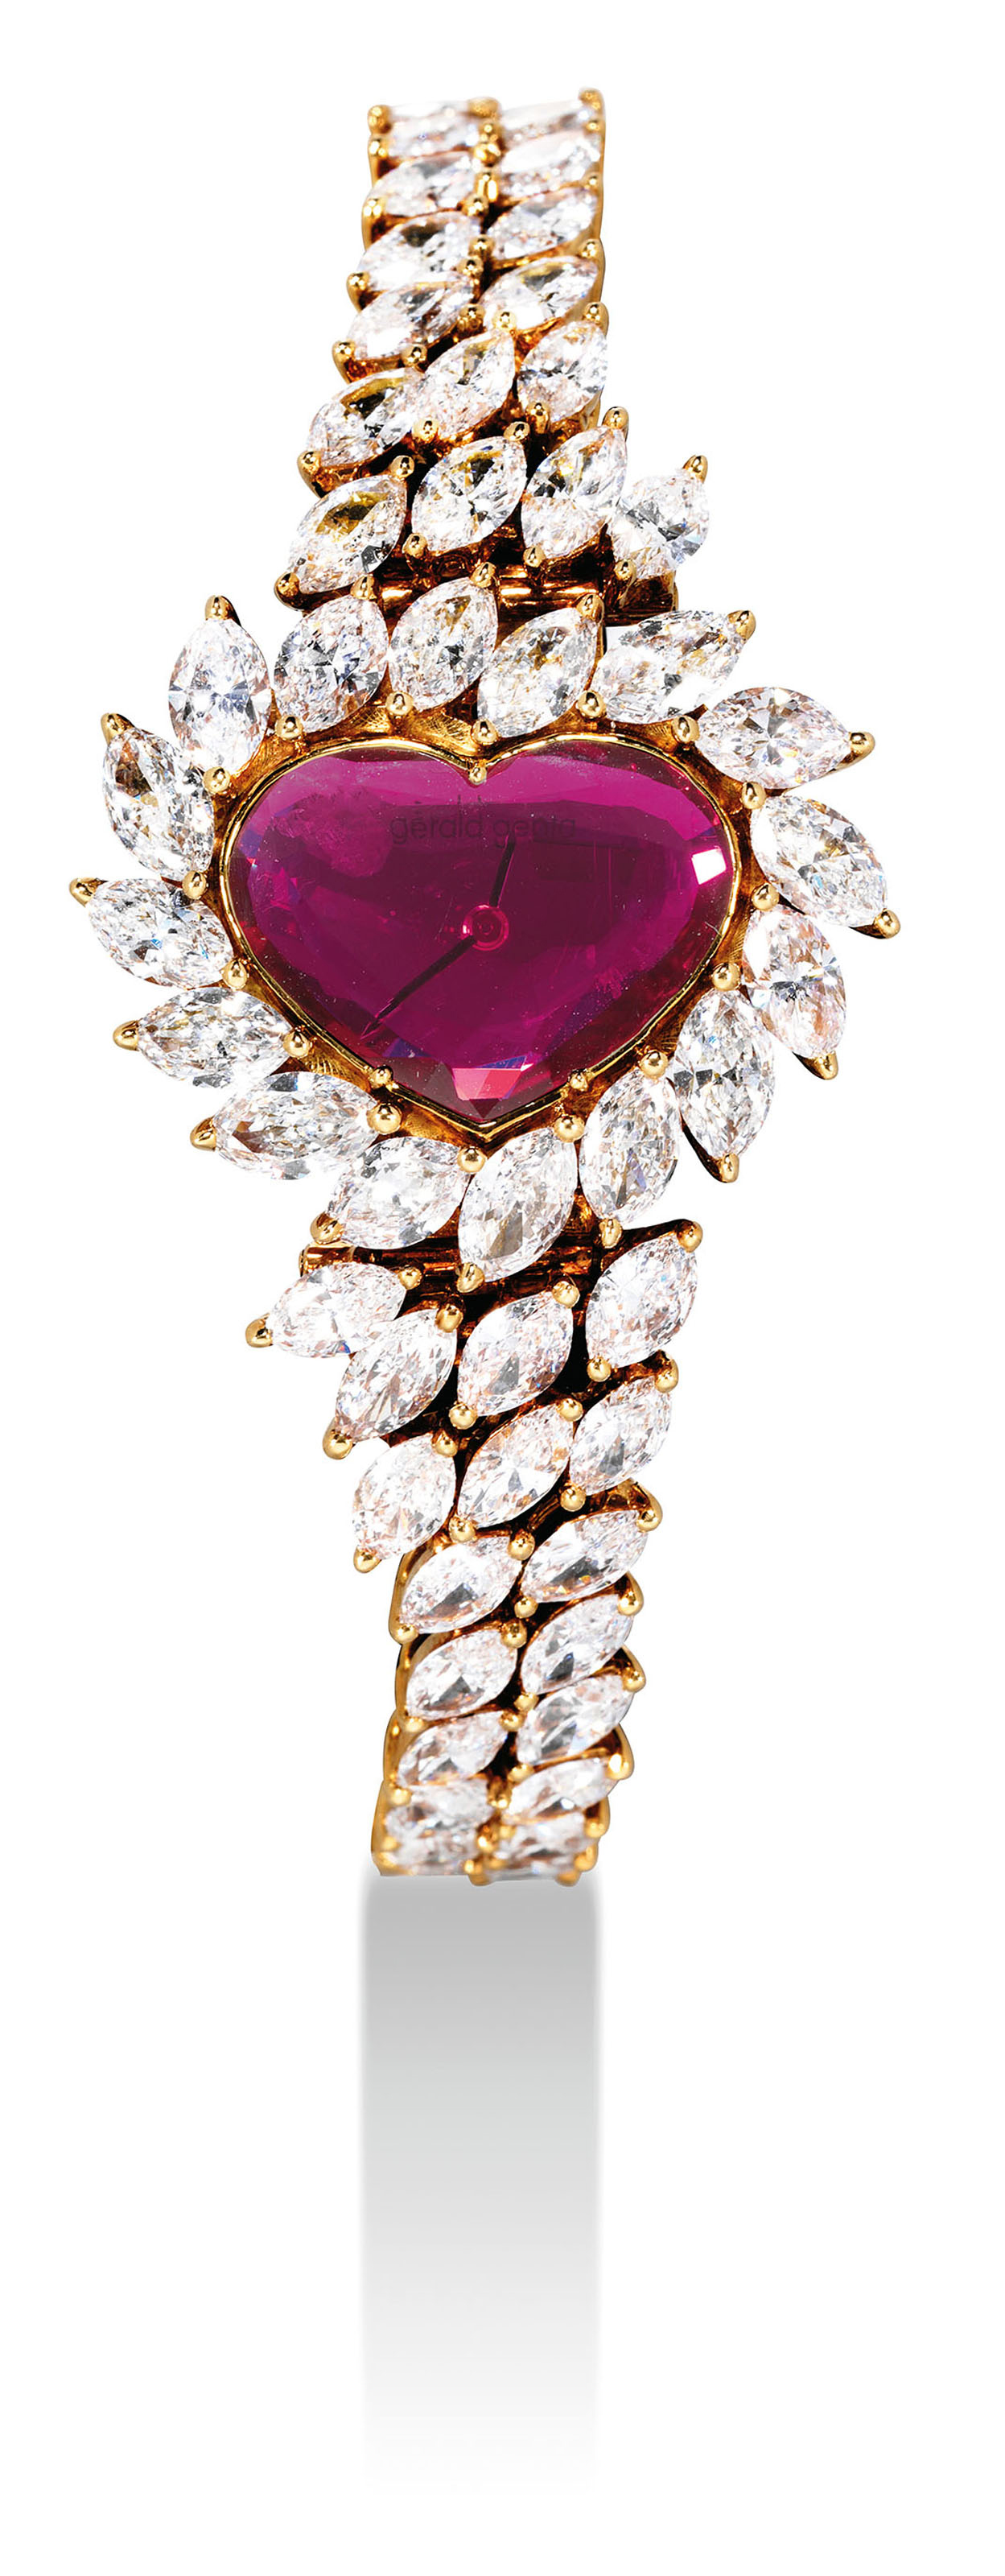 GERALD GENTA. A LADY'S FINE, VERY RARE AND UNIQUE 18K GOLD, DIAMOND AND RUBY-SET HEART-SHAPED BRACELET WATCH